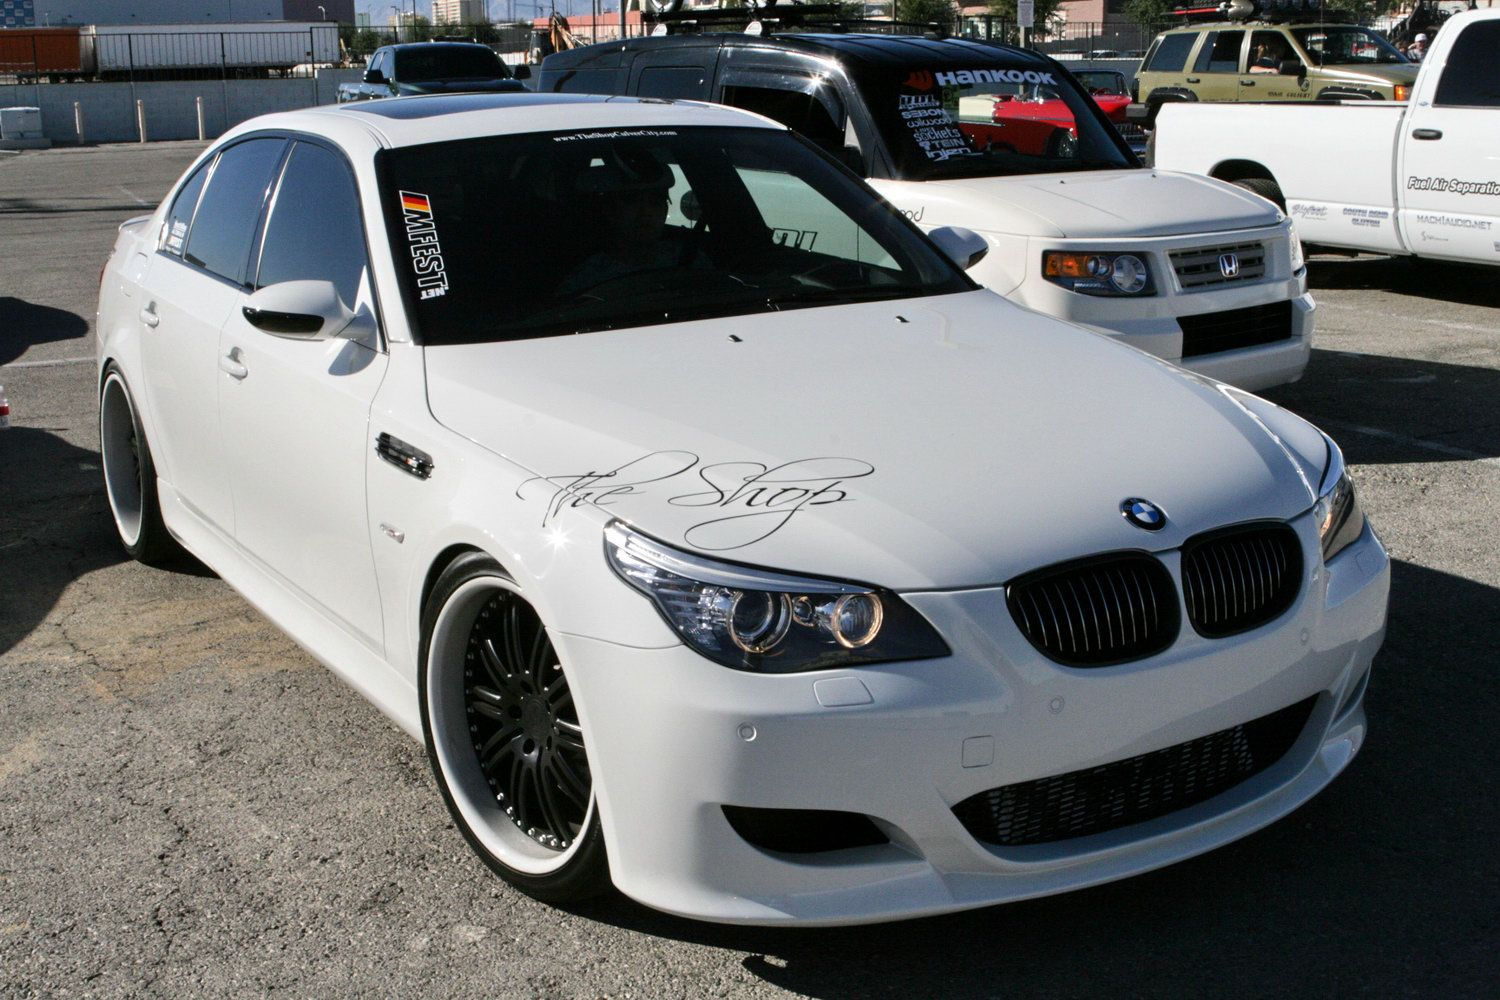 bmw tuning at 2009 sema show img 4 it s your auto world new cars auto news reviews. Black Bedroom Furniture Sets. Home Design Ideas